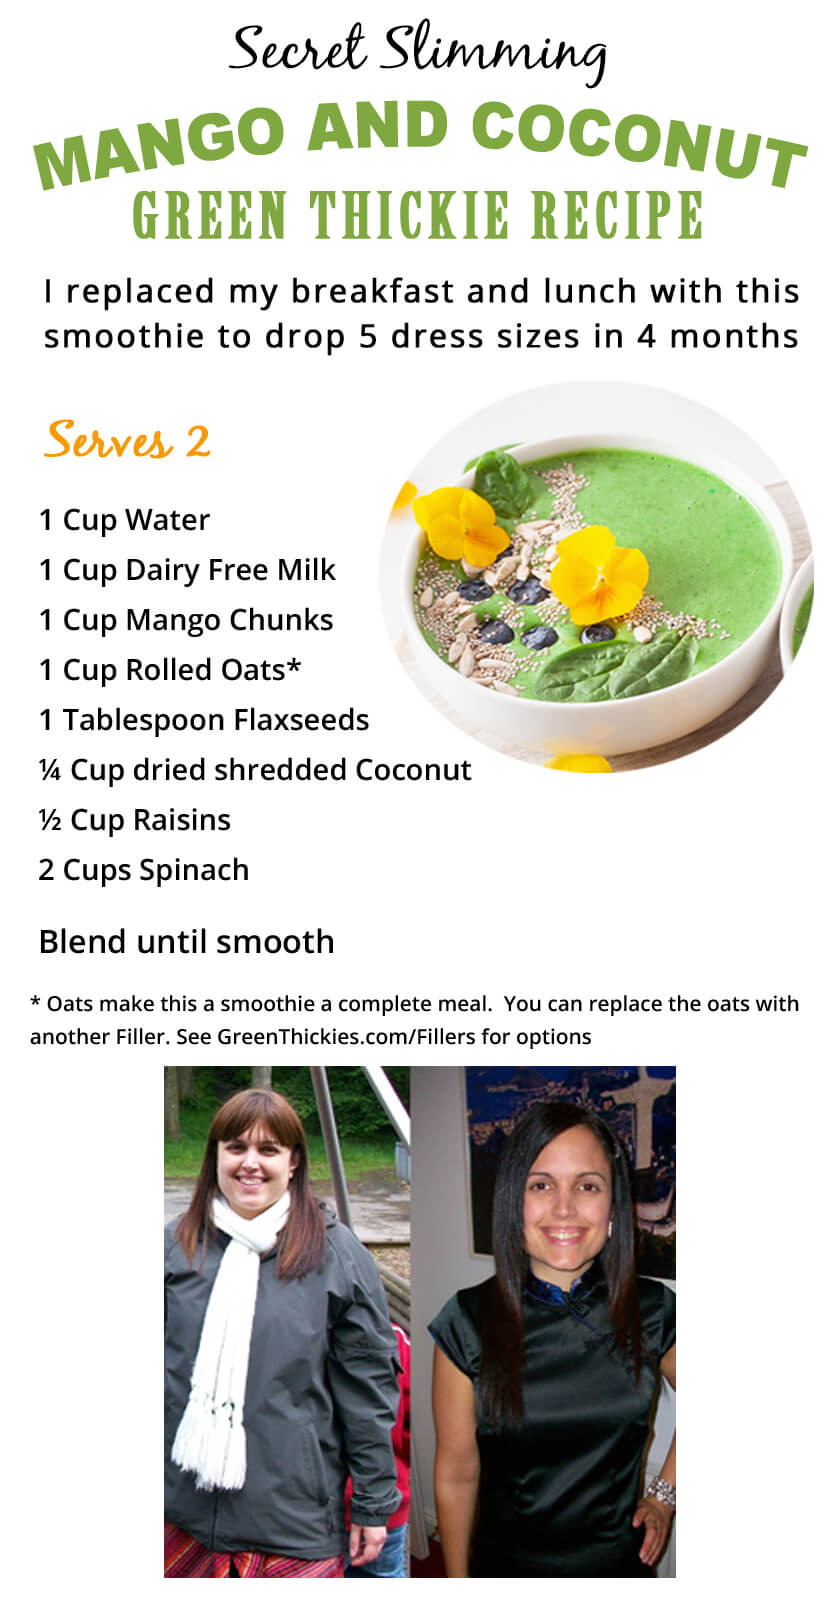 Secret Slimming Mango and Coconut Green Thickie Recipe